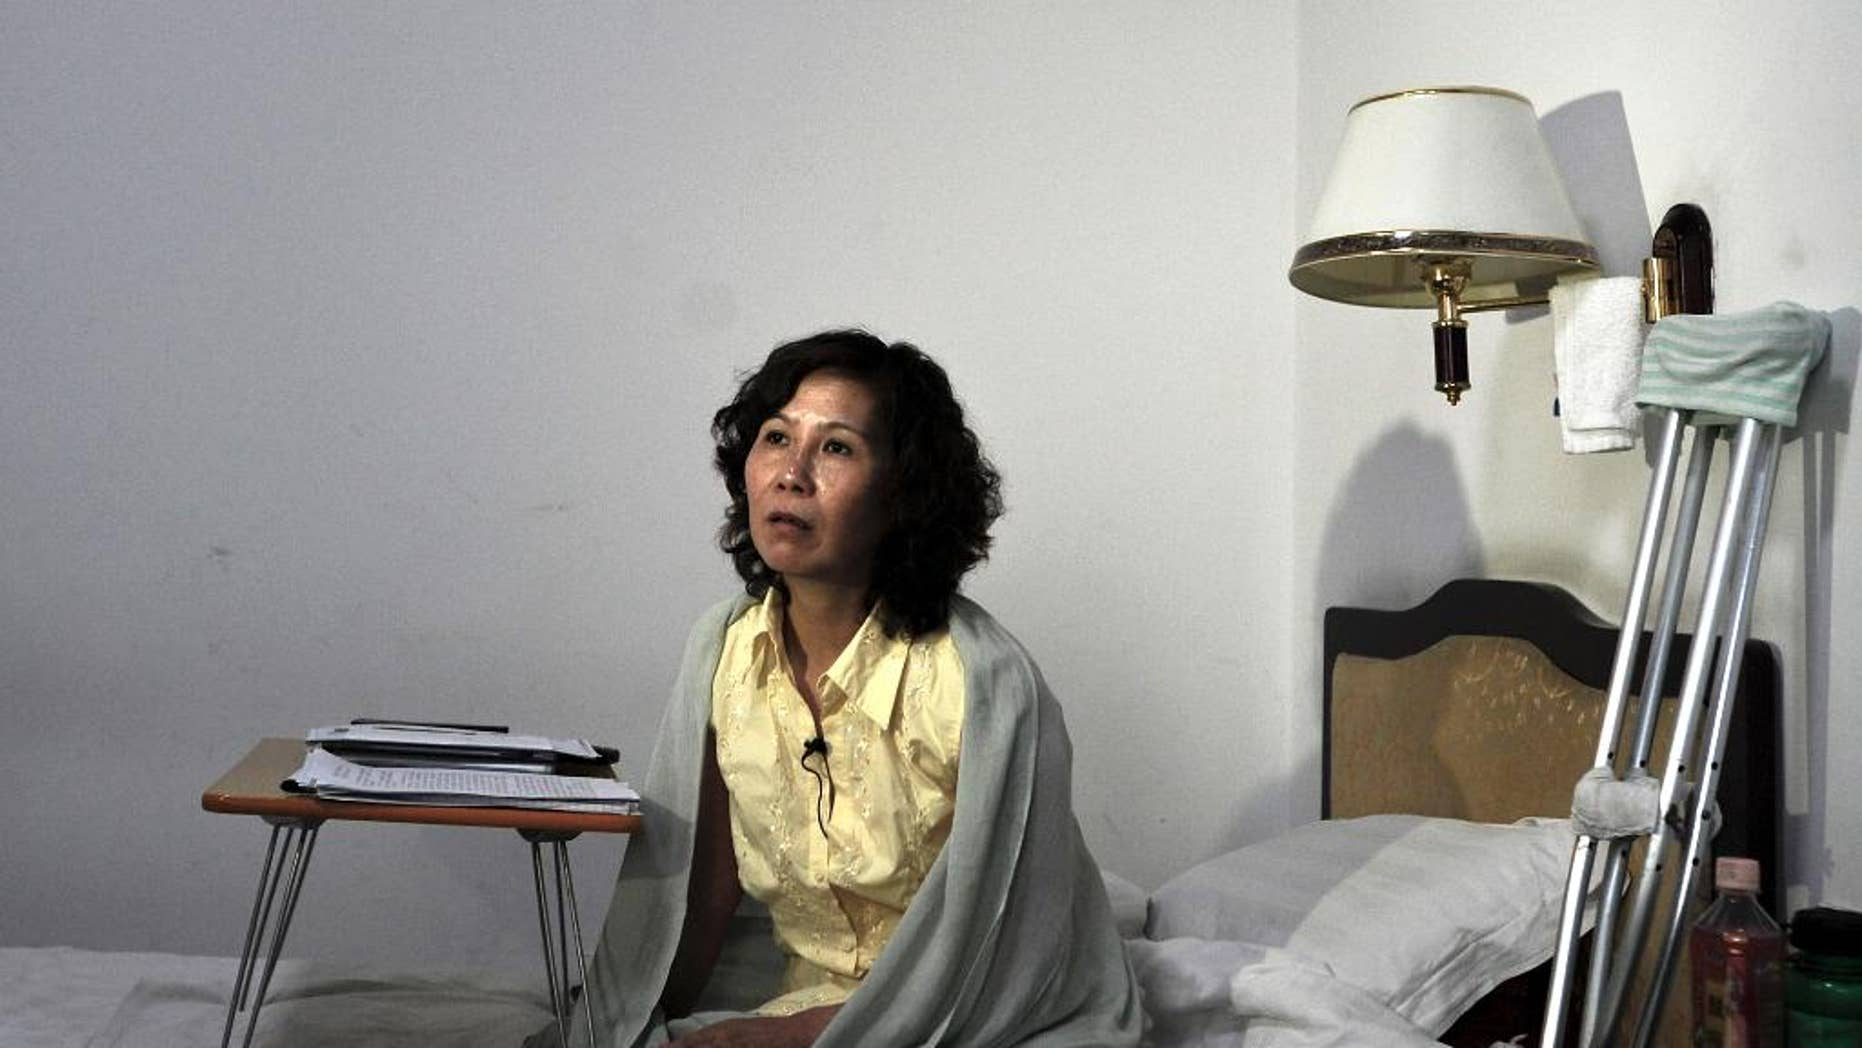 FILE - In this June 30, 2010, file photo, Chinese lawyer Ni Yulan sits on a bed in a hotel in Beijing. Ni was awarded the State Department's International Women of Courage Award for her work defending people forcibly evicted from their homes. Ni said that police stopped five Western diplomats who were trying to visit her in Beijing on Saturday, April 23, 2016, after she had been prevented from travelling to the United States to accept the award for her rights work. (AP Photo/Andy Wong, File)